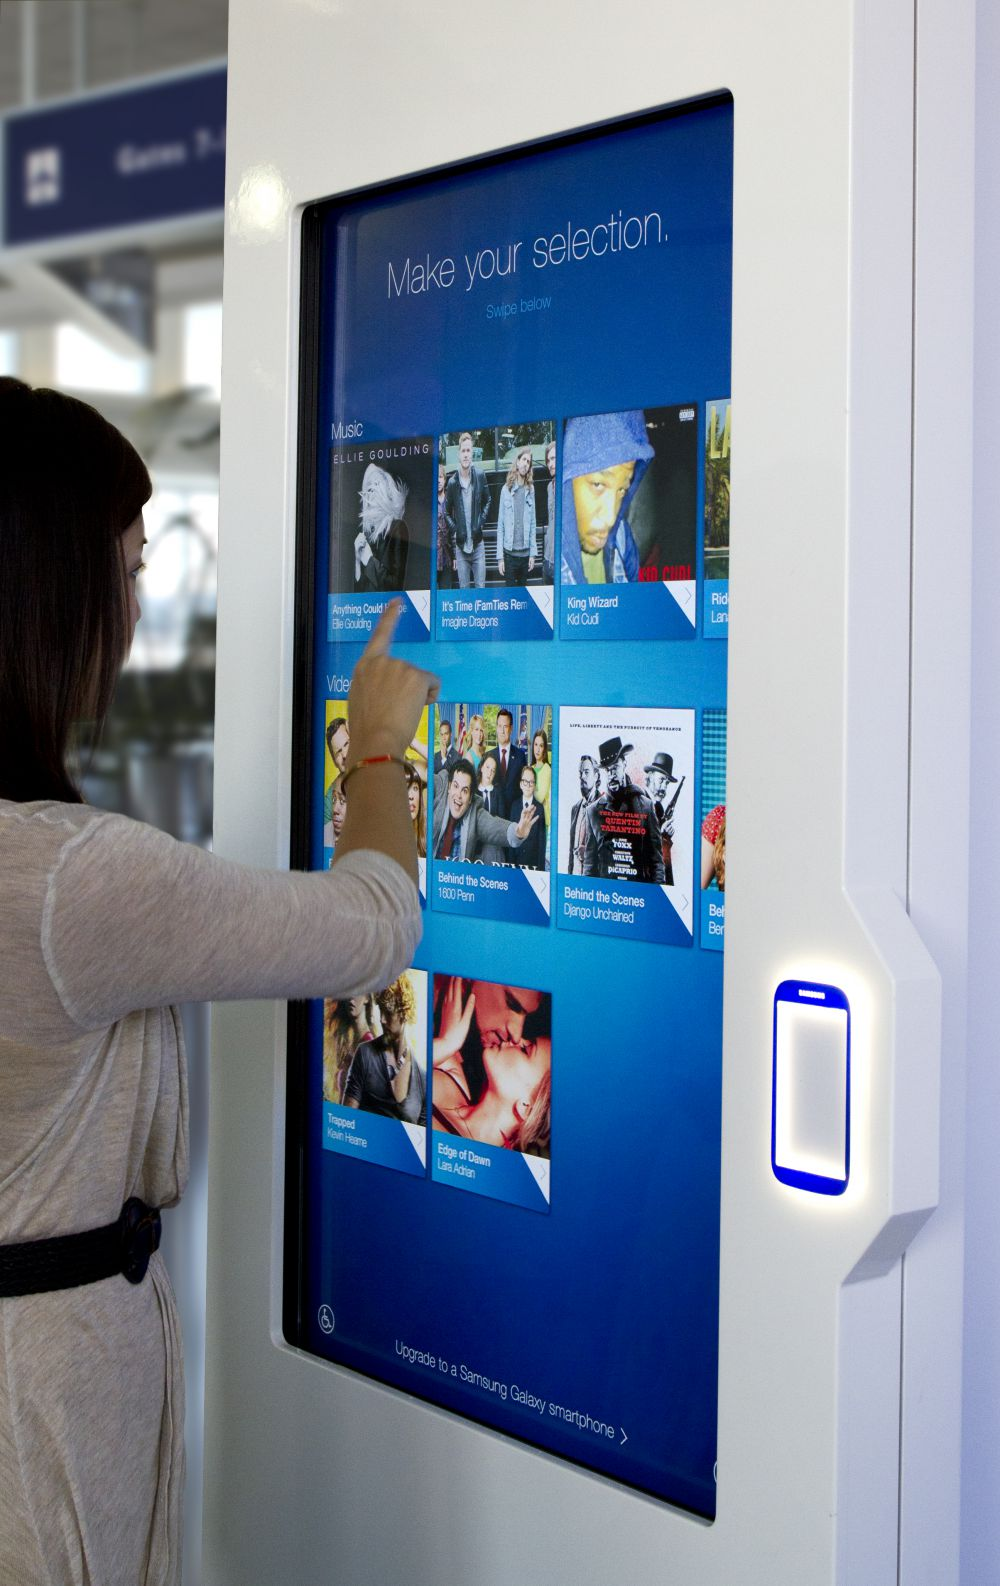 User interacting with the Samsung NFC kiosk screen